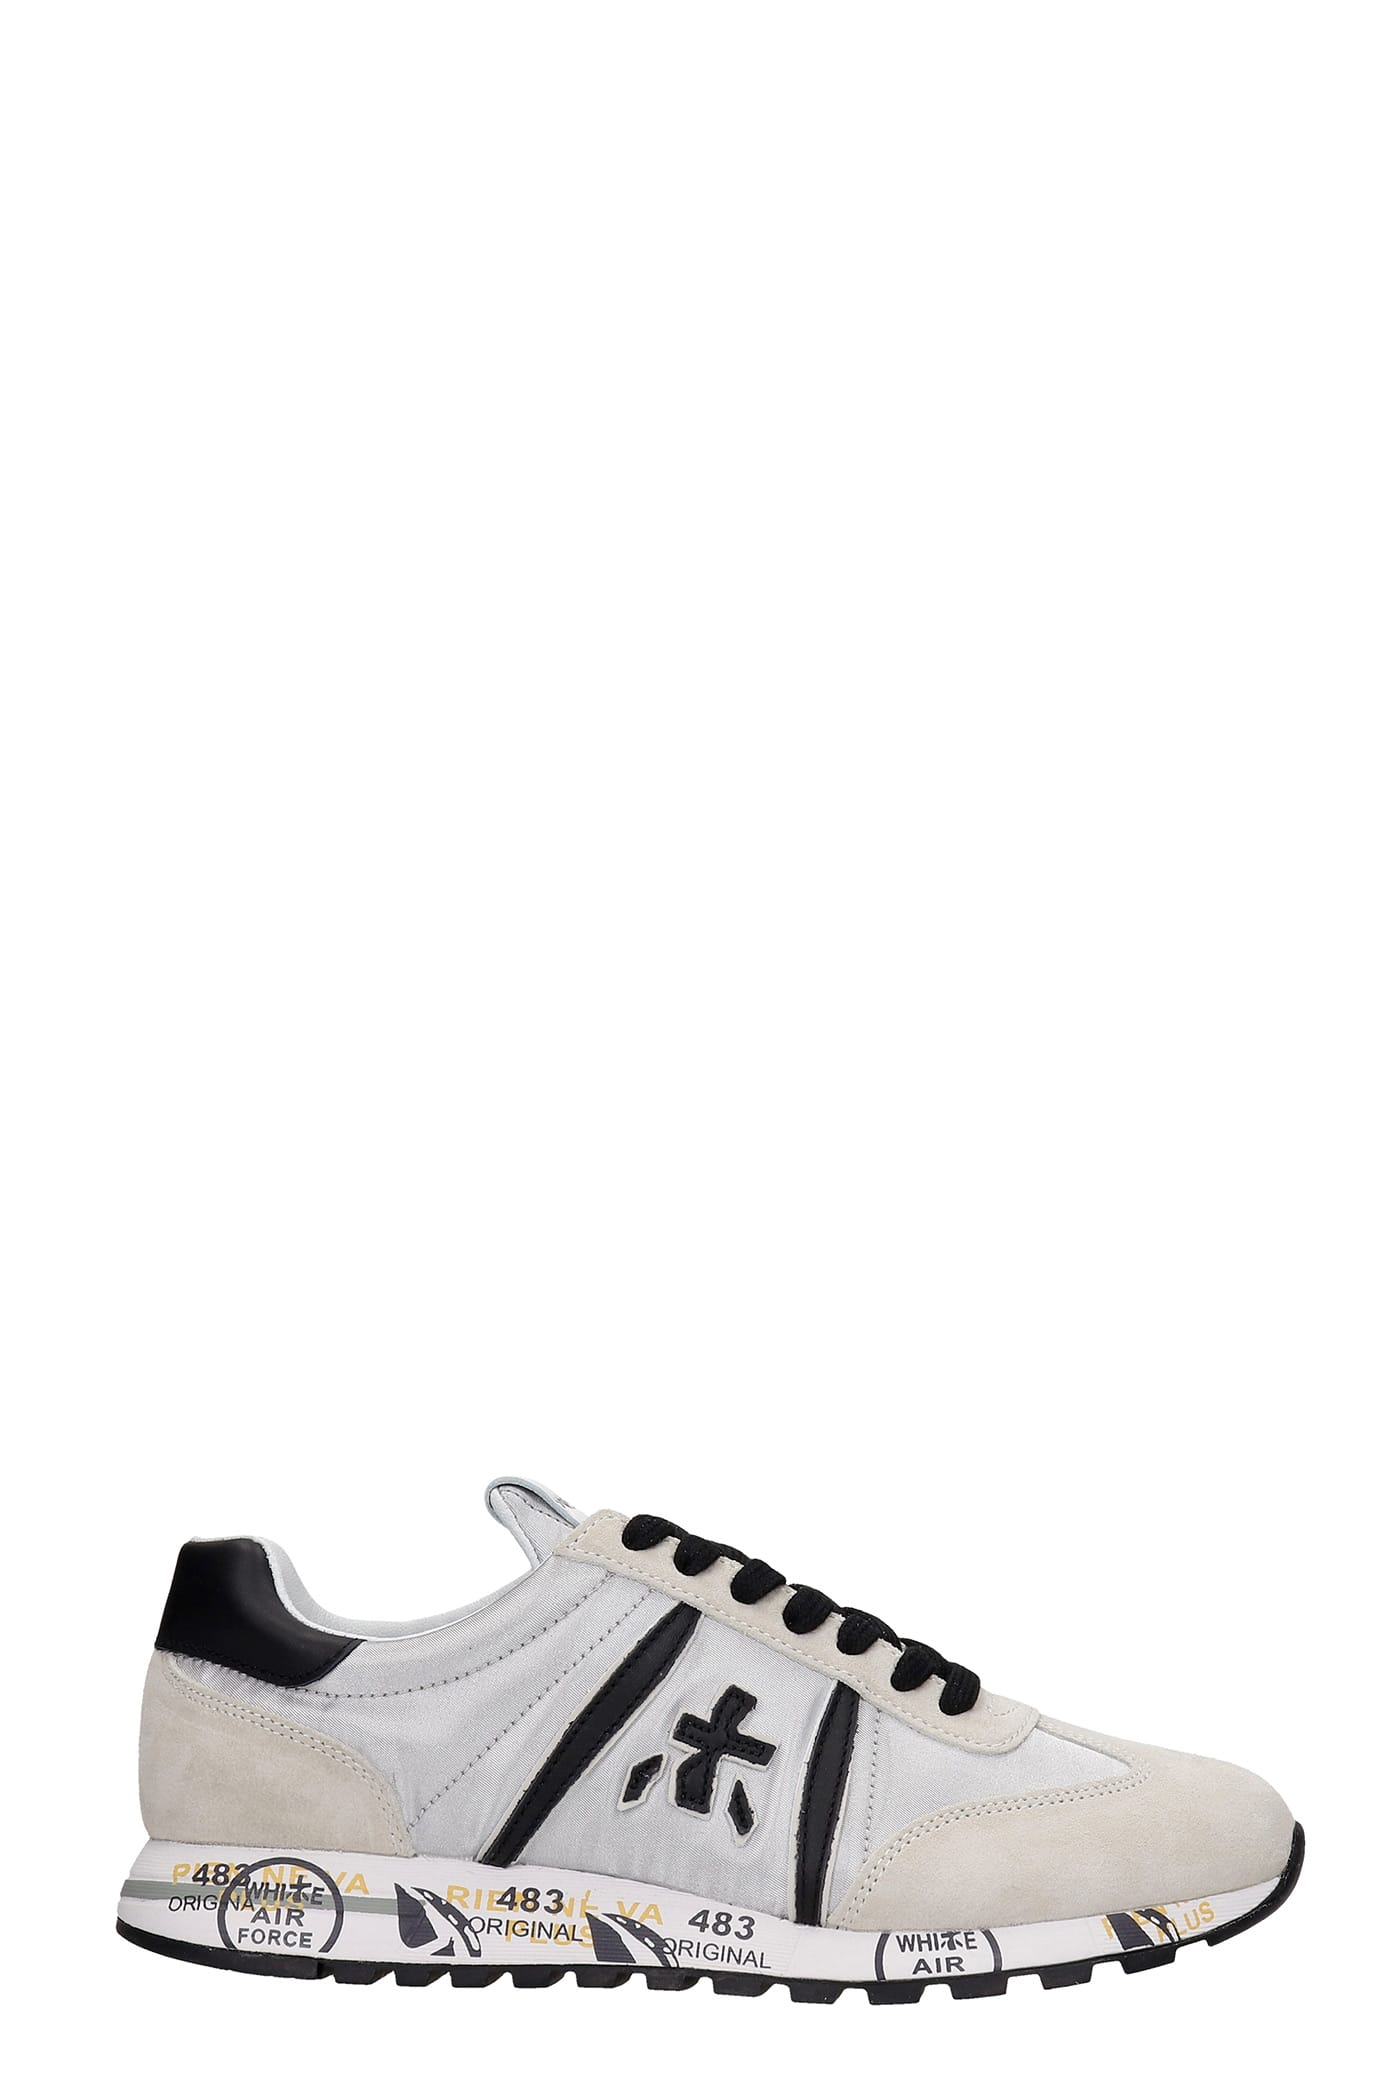 Premiata LUCY SNEAKERS IN GREY SYNTHETIC FIBERS